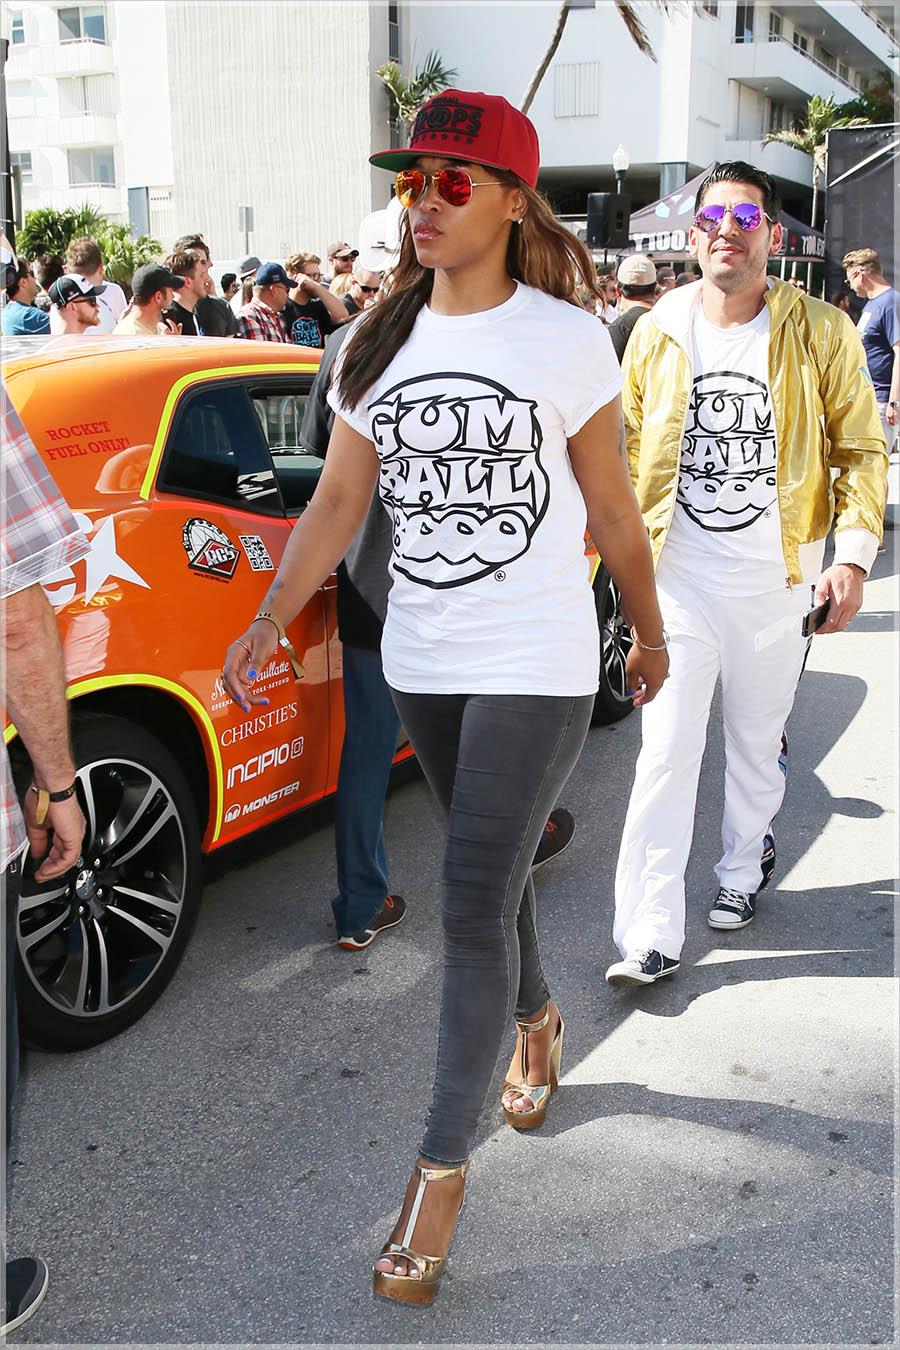 Eve at The 2014 Gumball 3000 starting grid Day 1